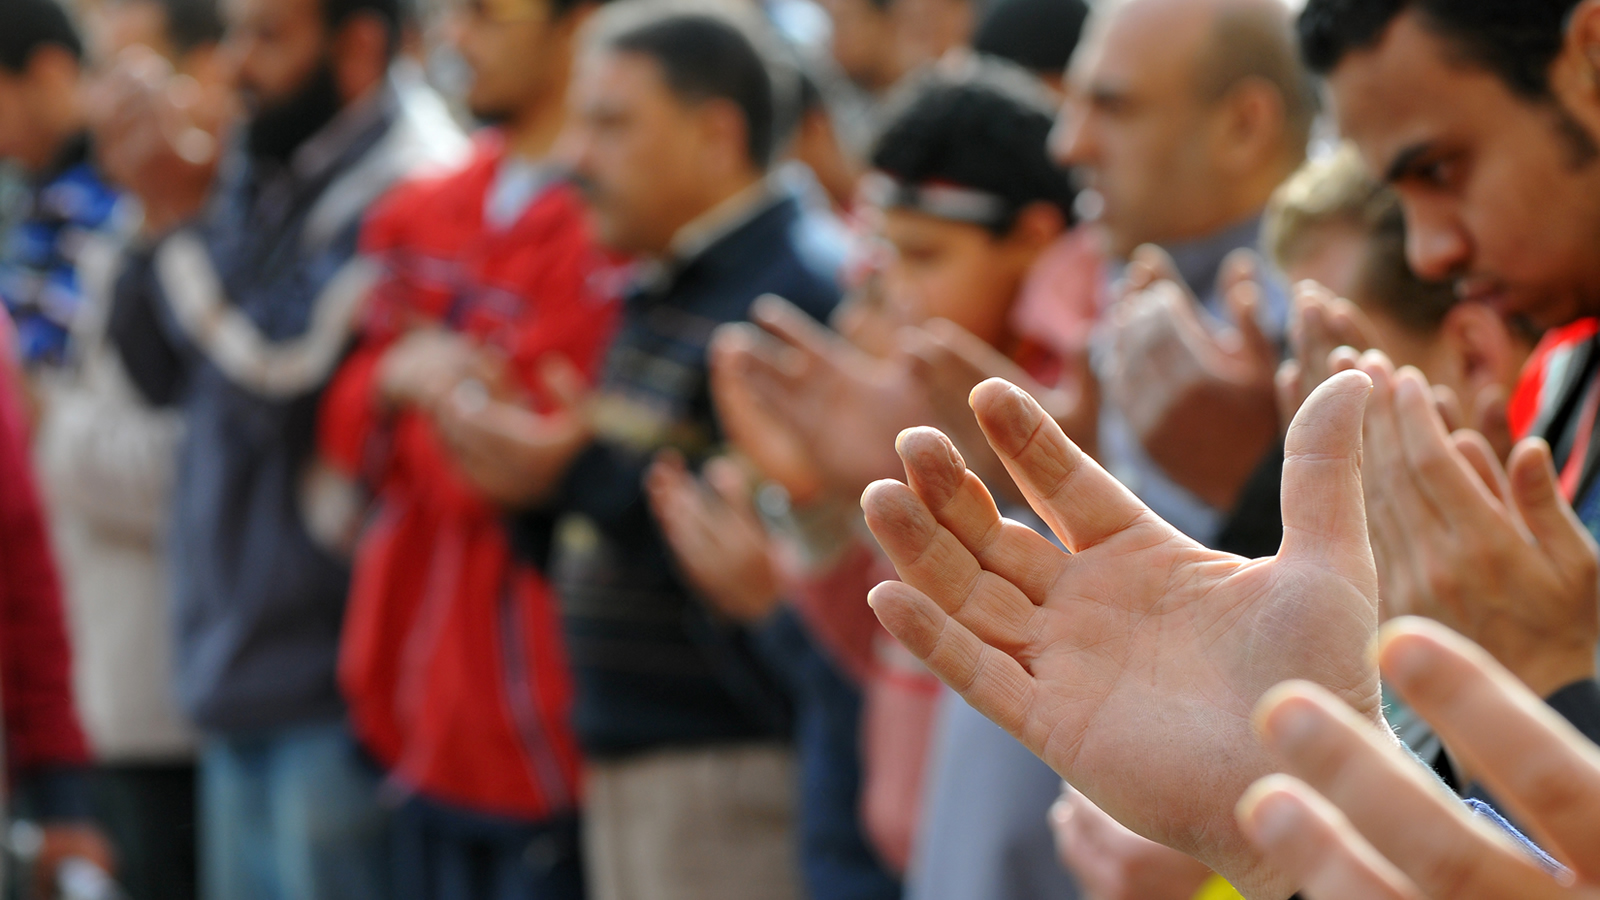 Men Praying with Hands Up